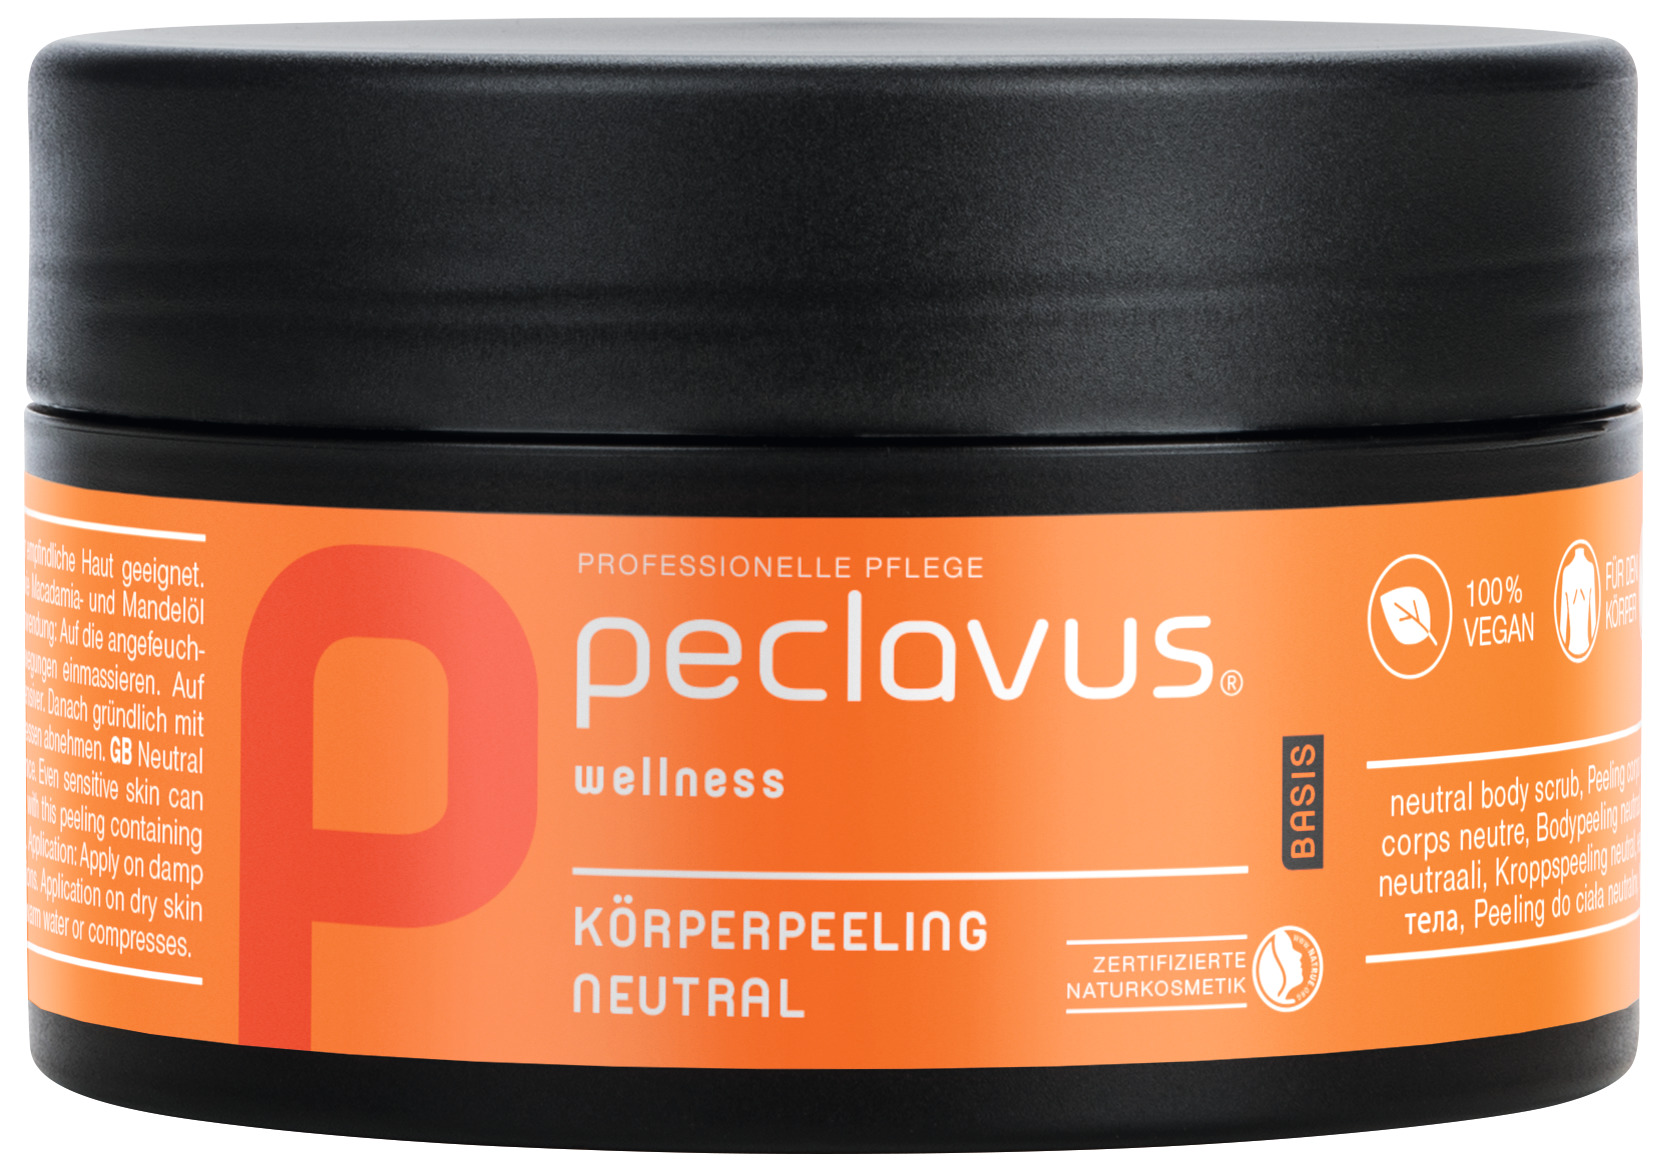 peclavus Körper-Peeling Neutral - Basis